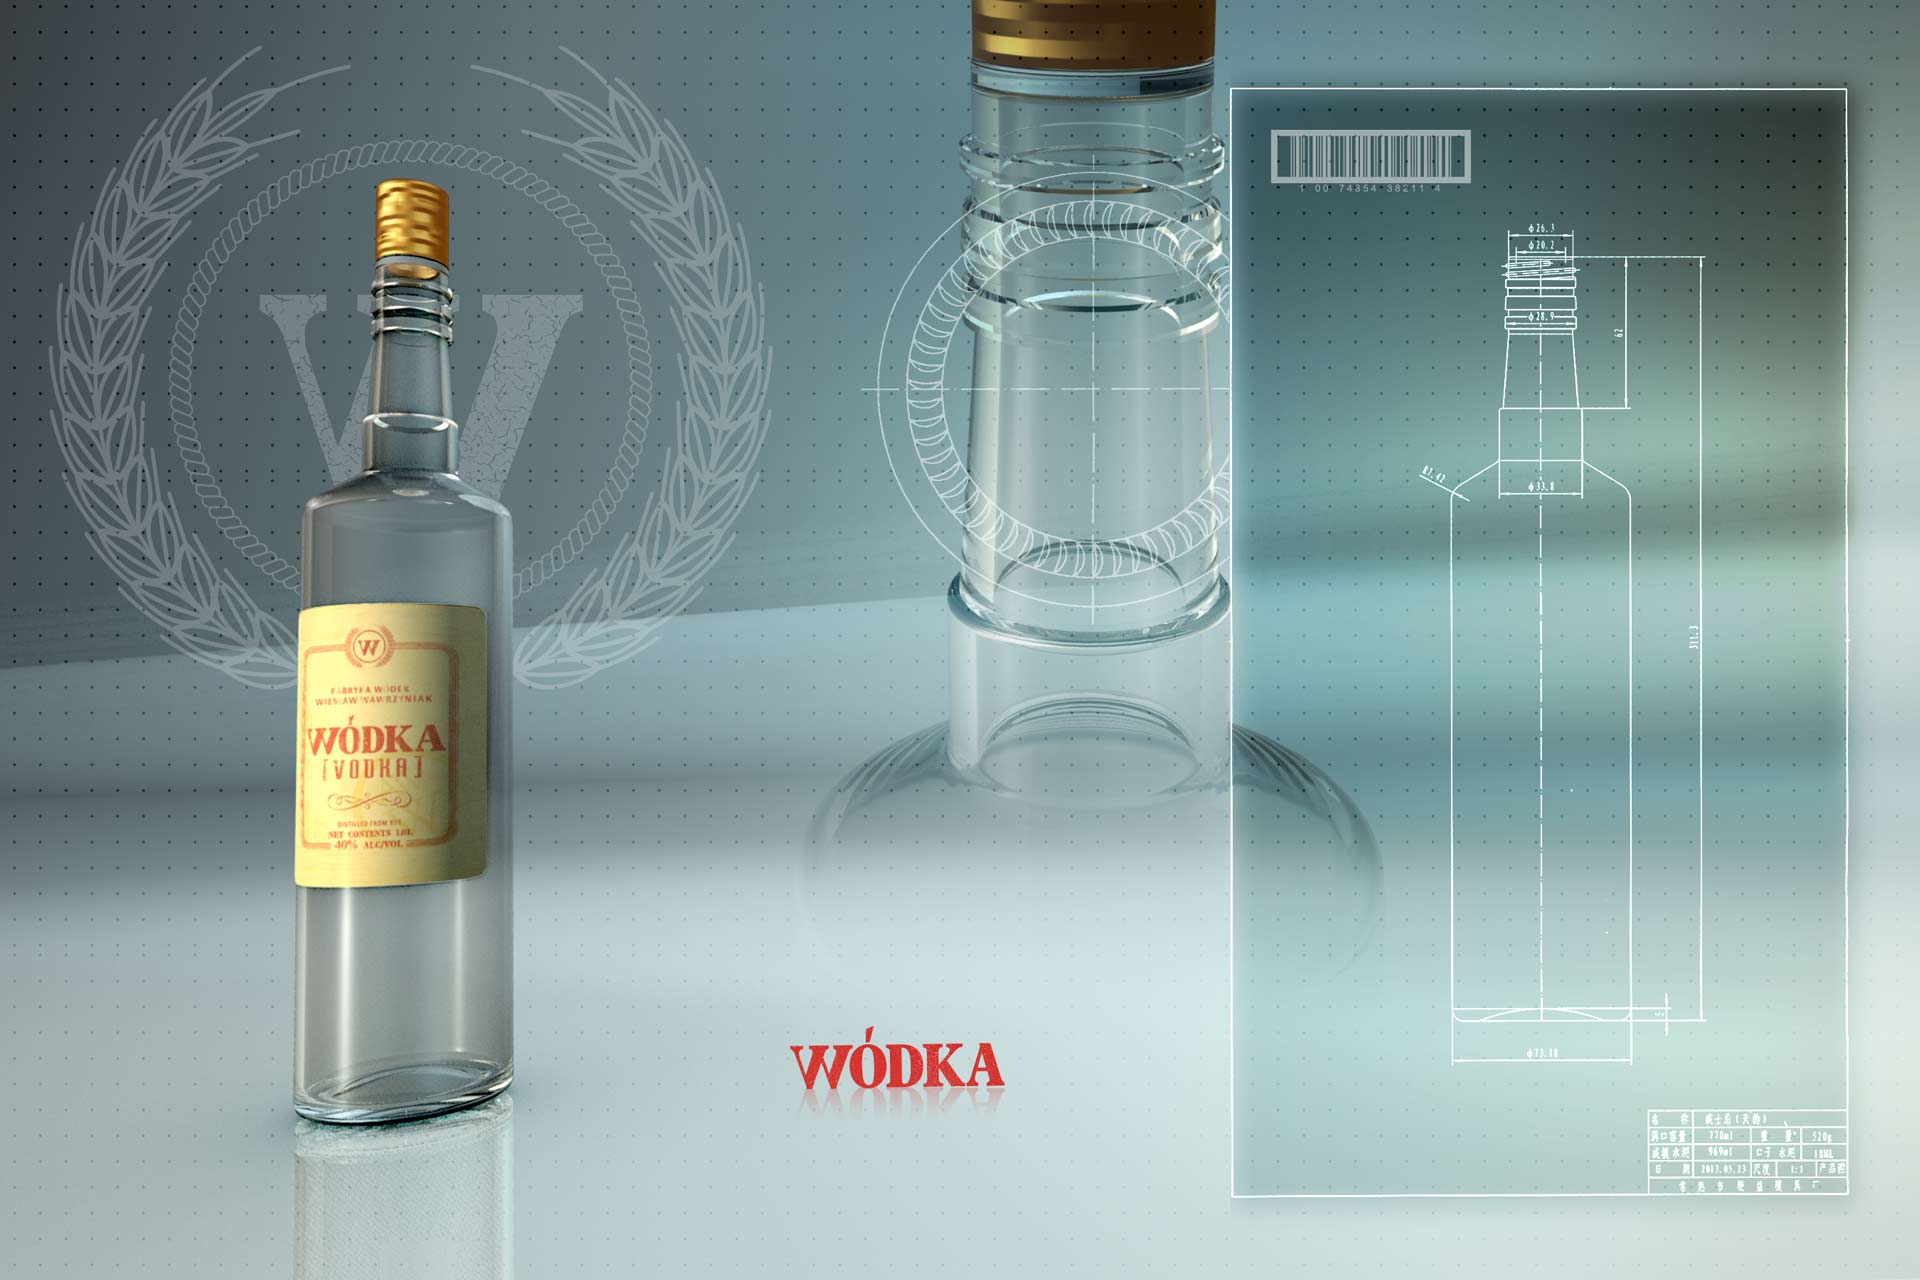 Vodka 3D Bottle Rendering